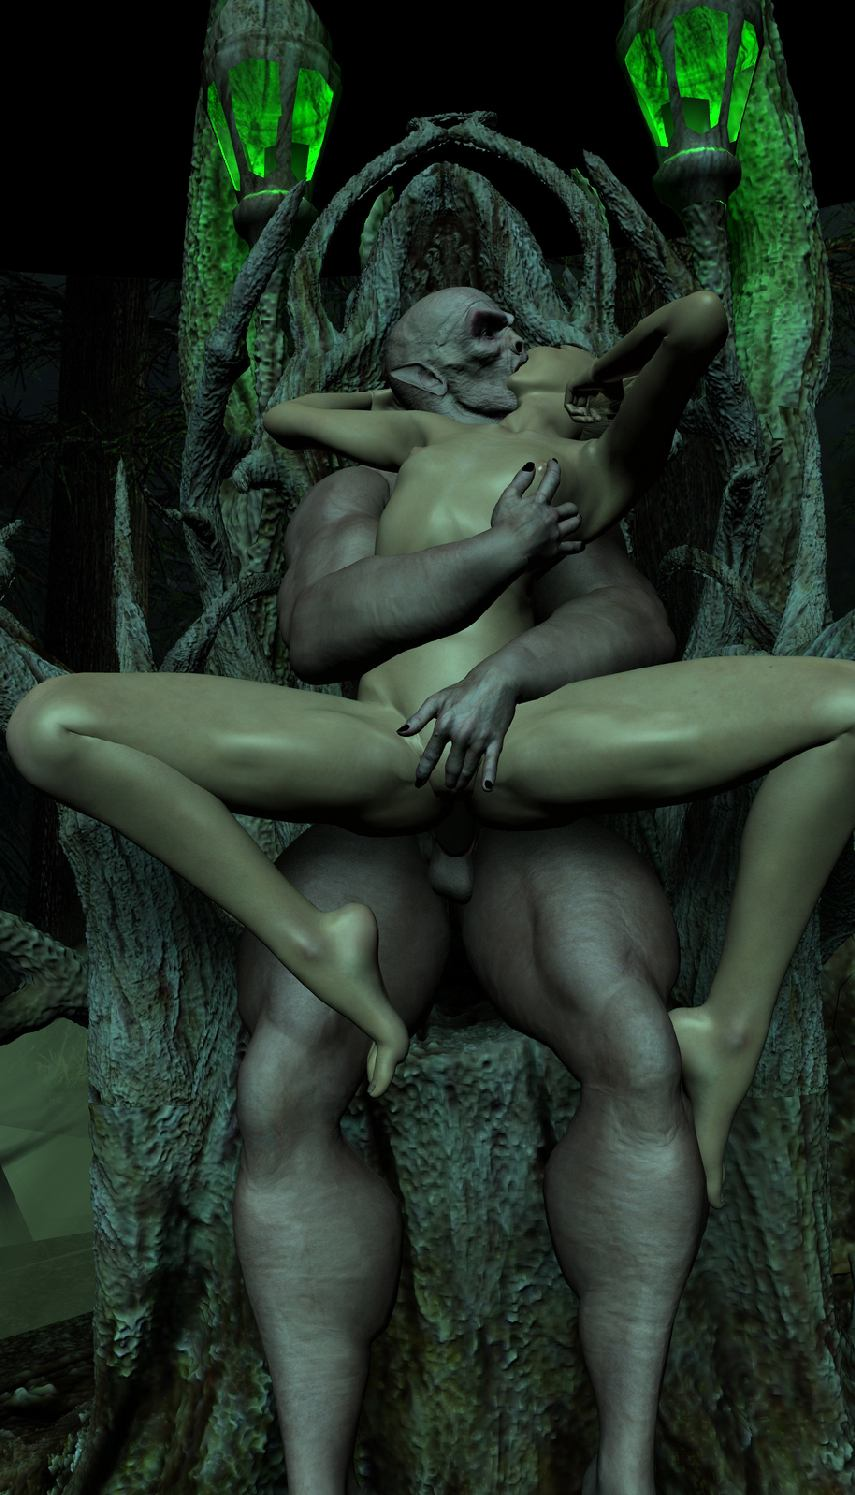 Vampire zombie demon sex xxx erotic pic